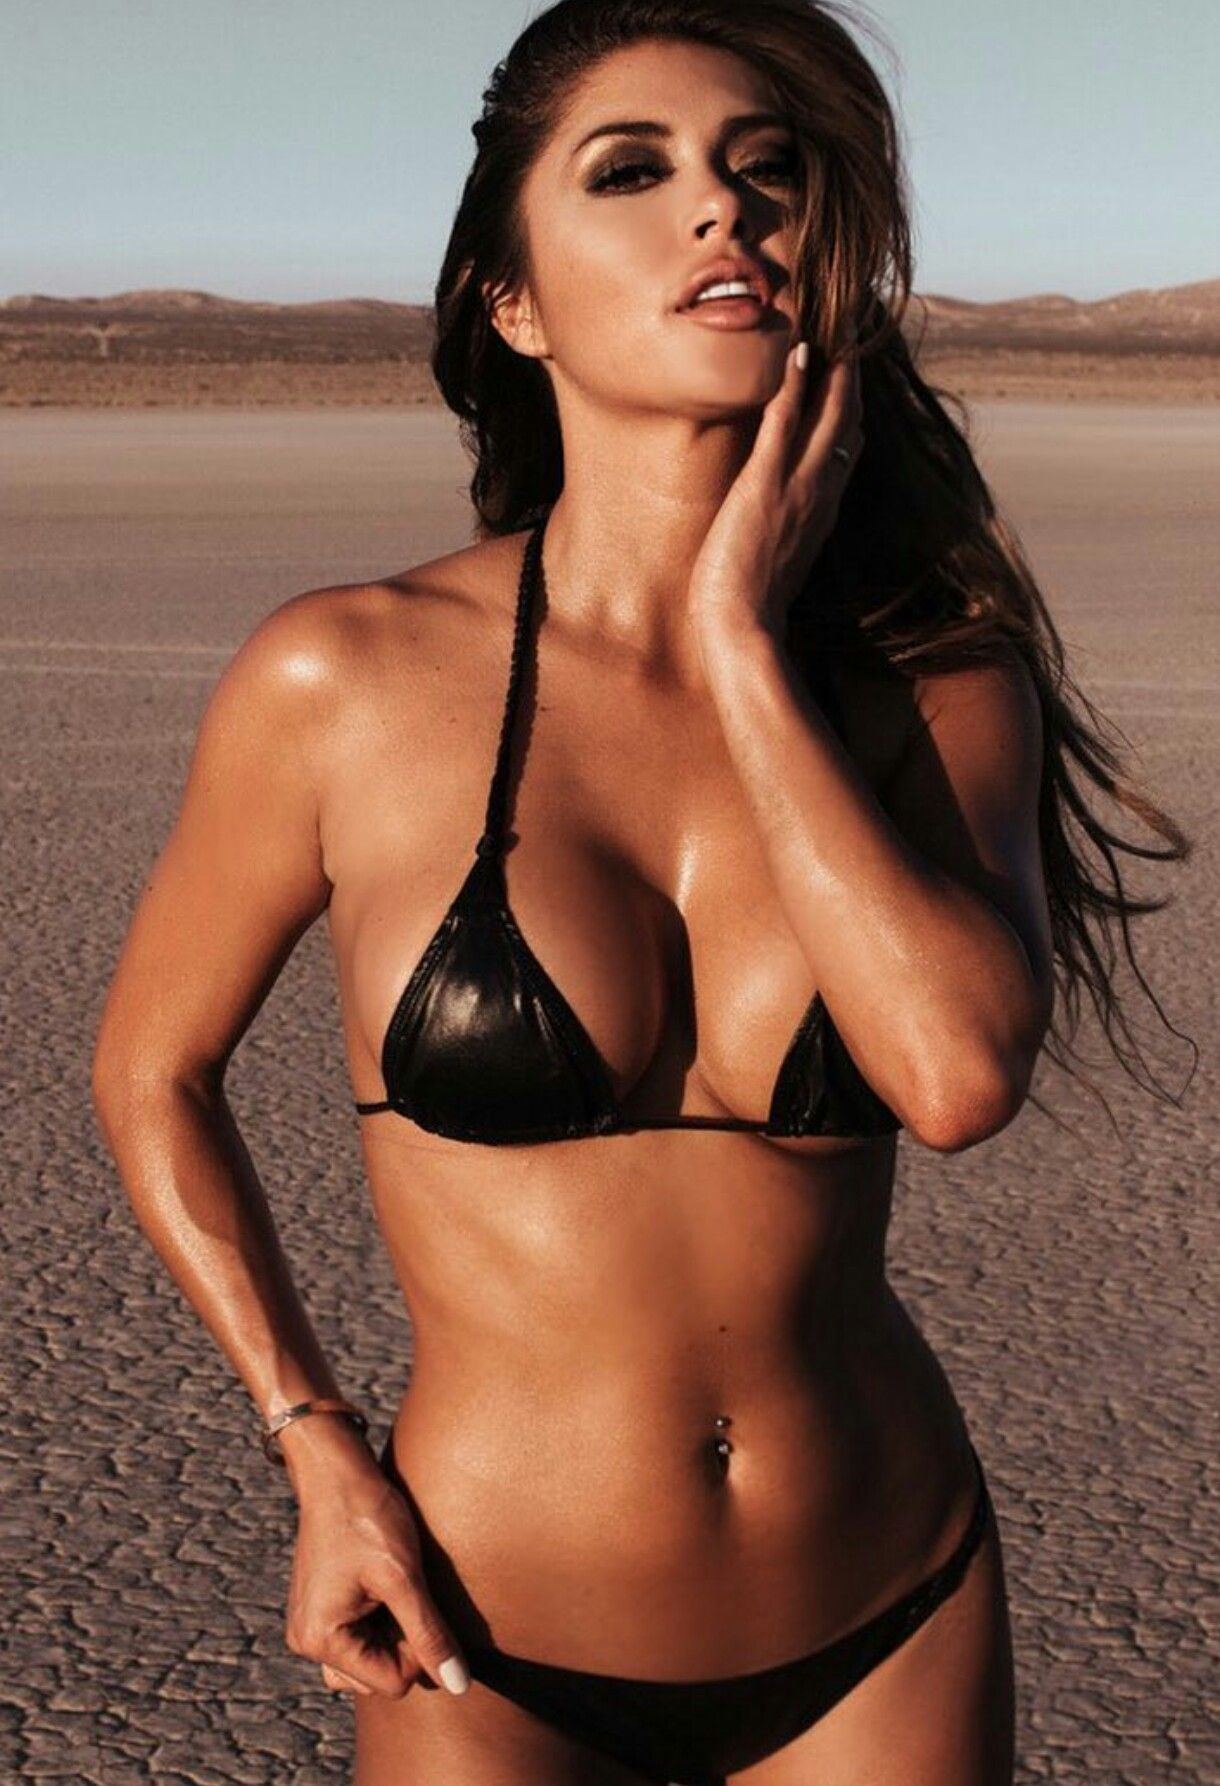 Arianny celeste sexy 6 nudes (69 photo)